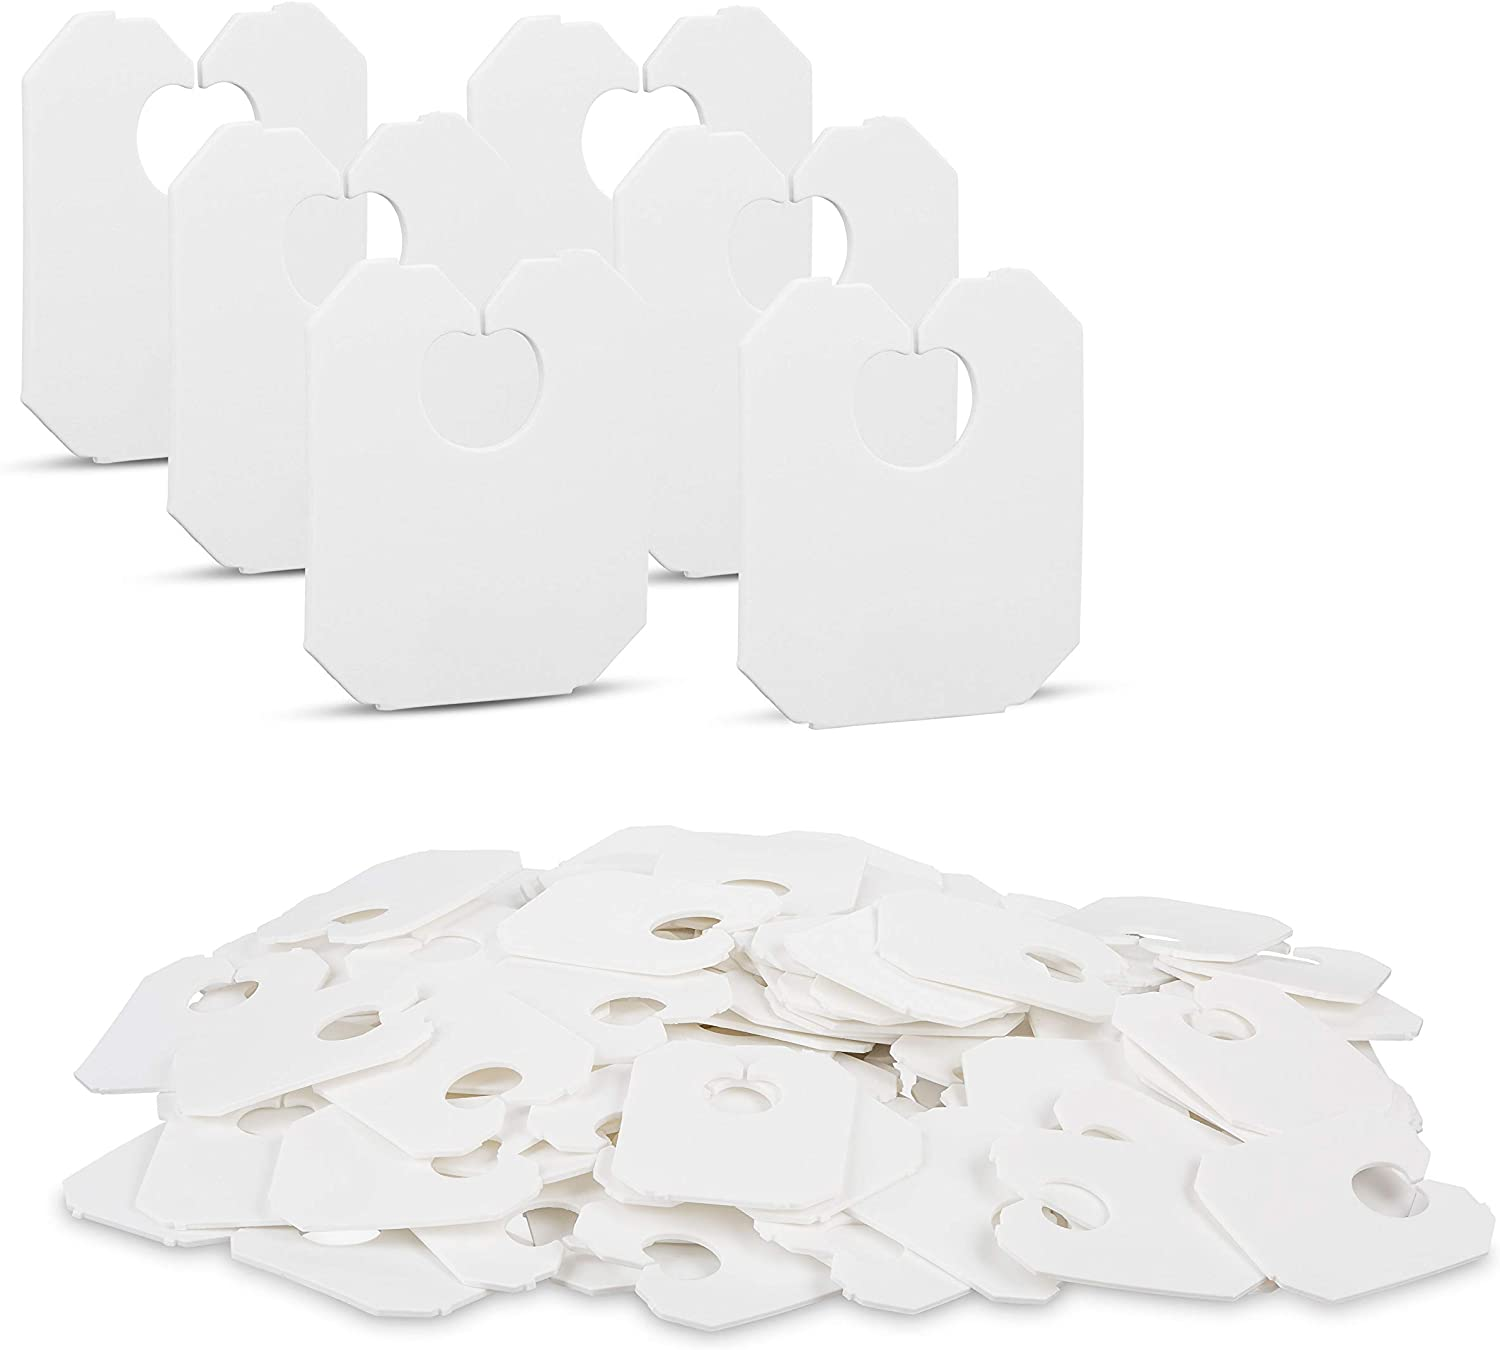 Disposable White Plastic Bread Clips 7/8 x 1 1/8 inches Keep Your Food Fresh After Opening by MT Products (100 Pieces)